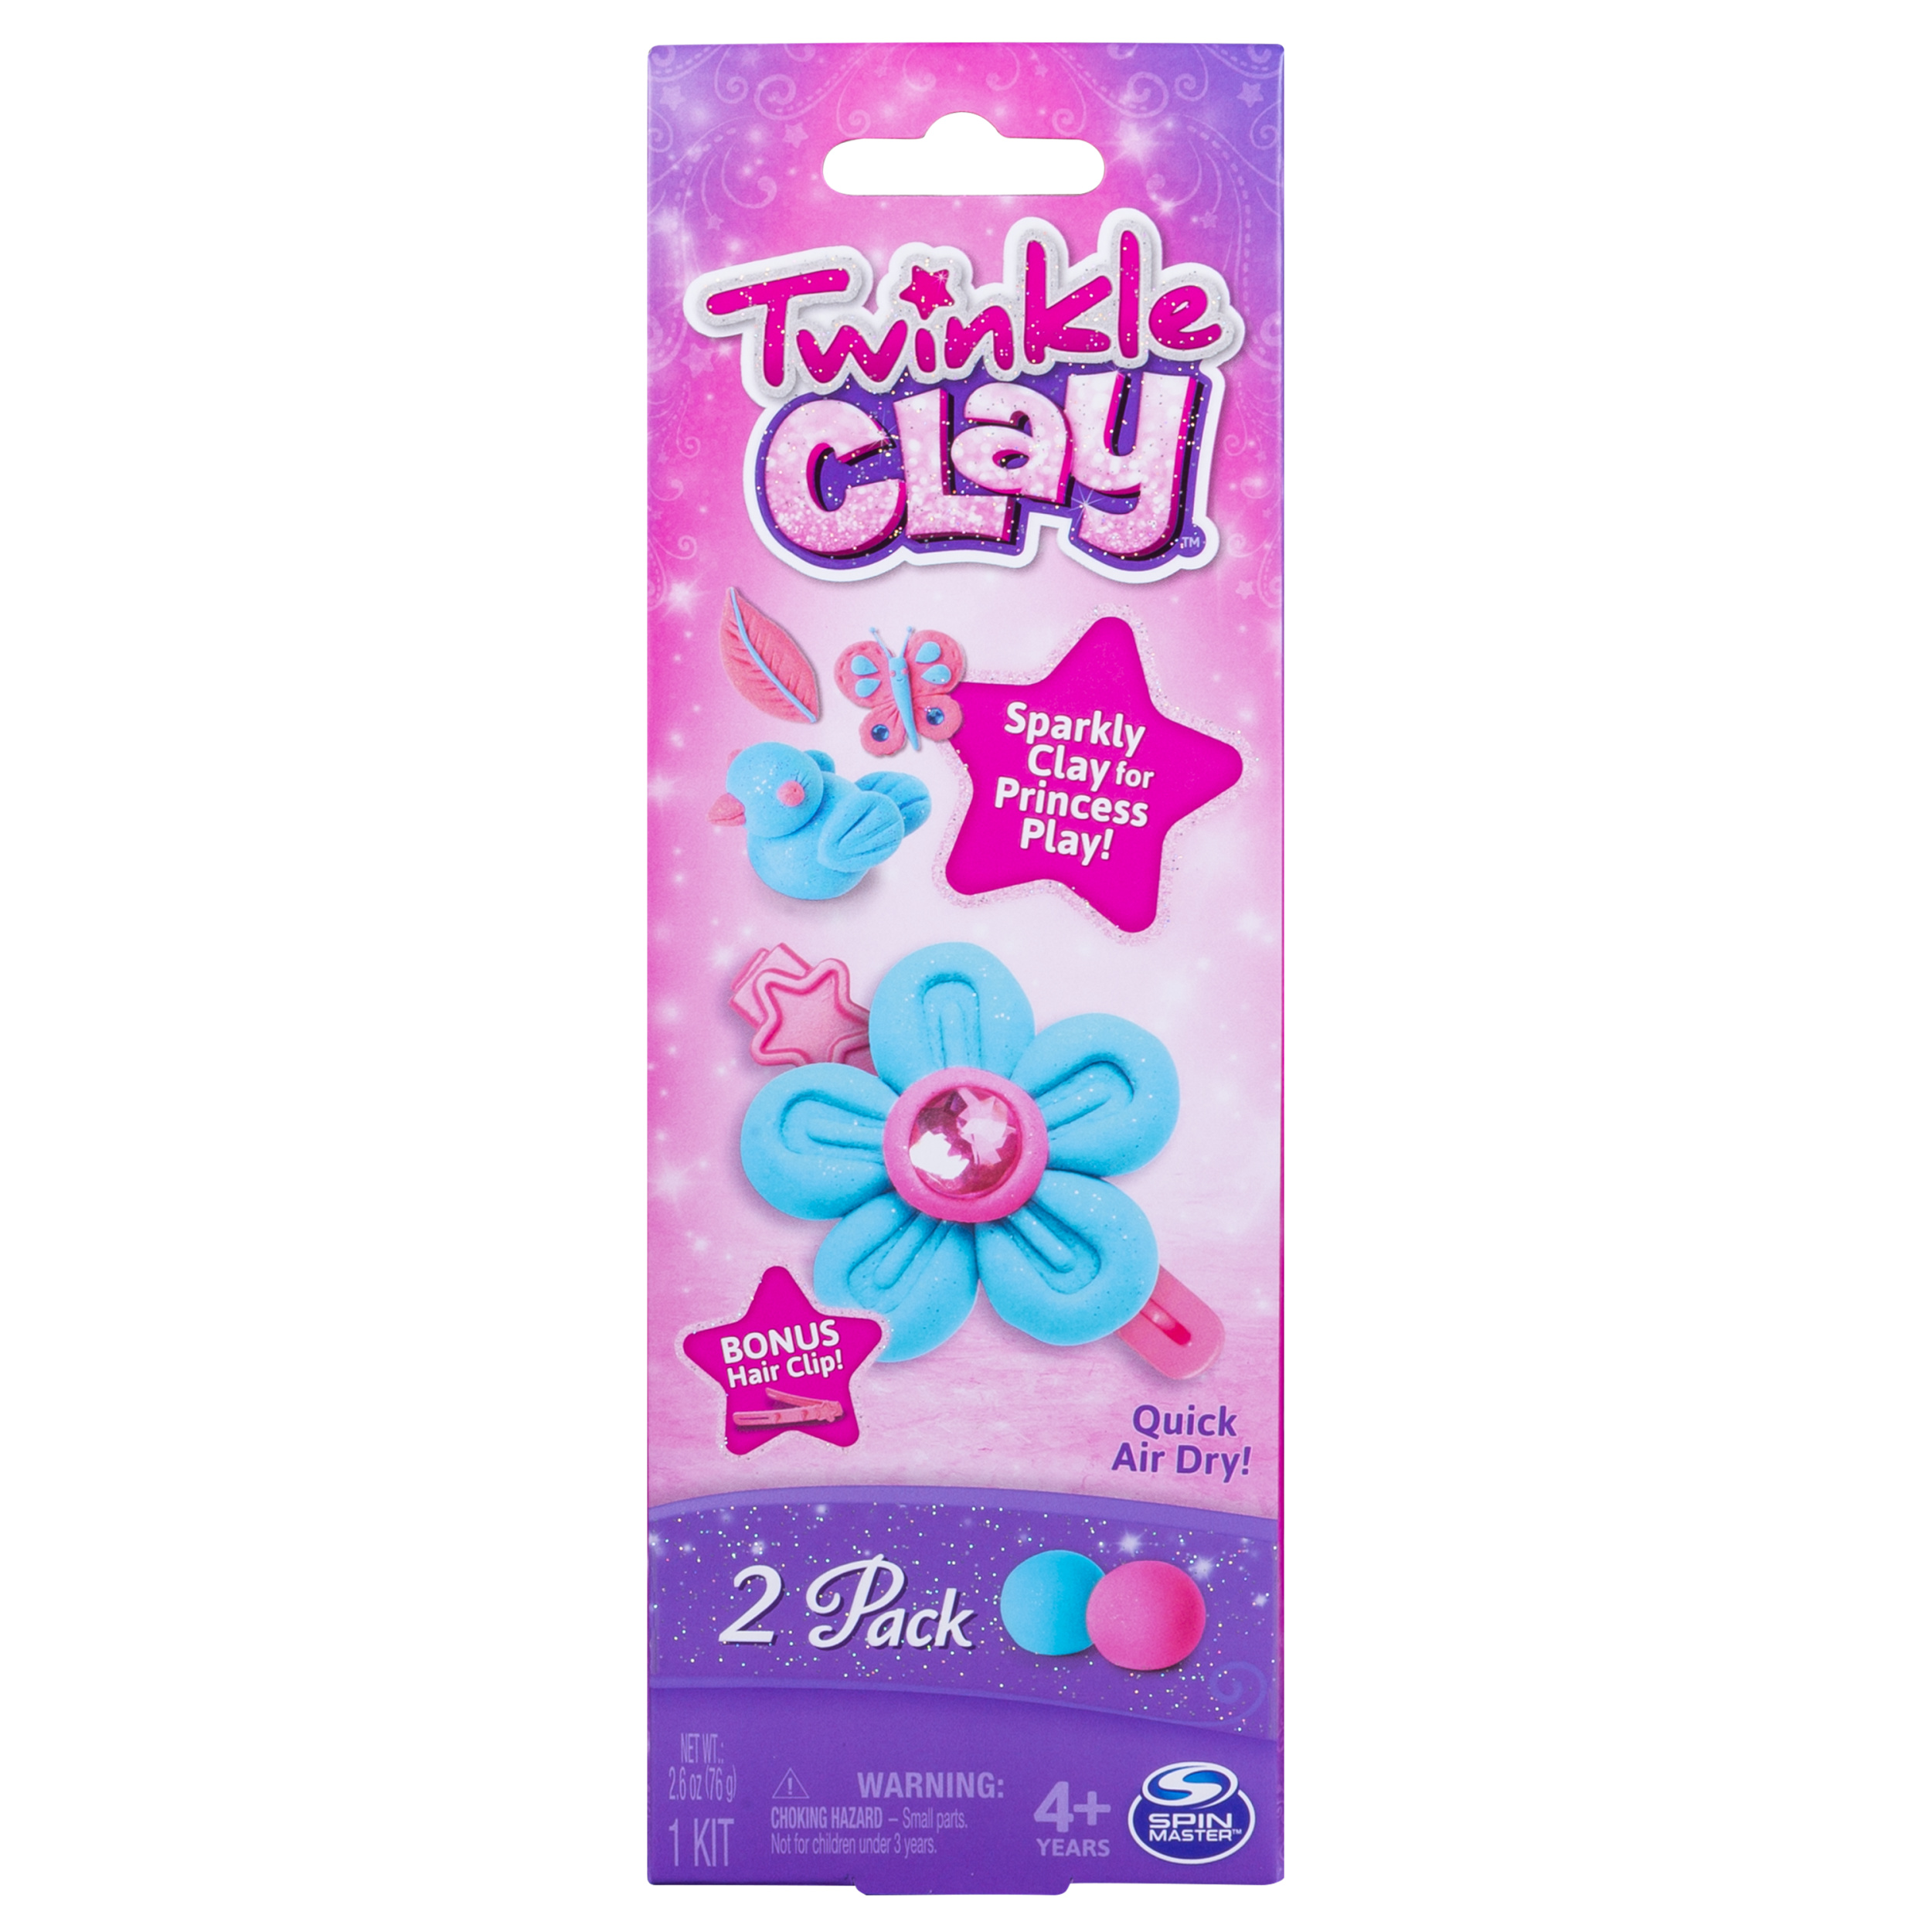 Twinkle Clay – Blue and Pink 2-Pack with Bonus Hair Clip, Makes Sparkly Air-Dry Clay Creations, for Ages 4 and Up